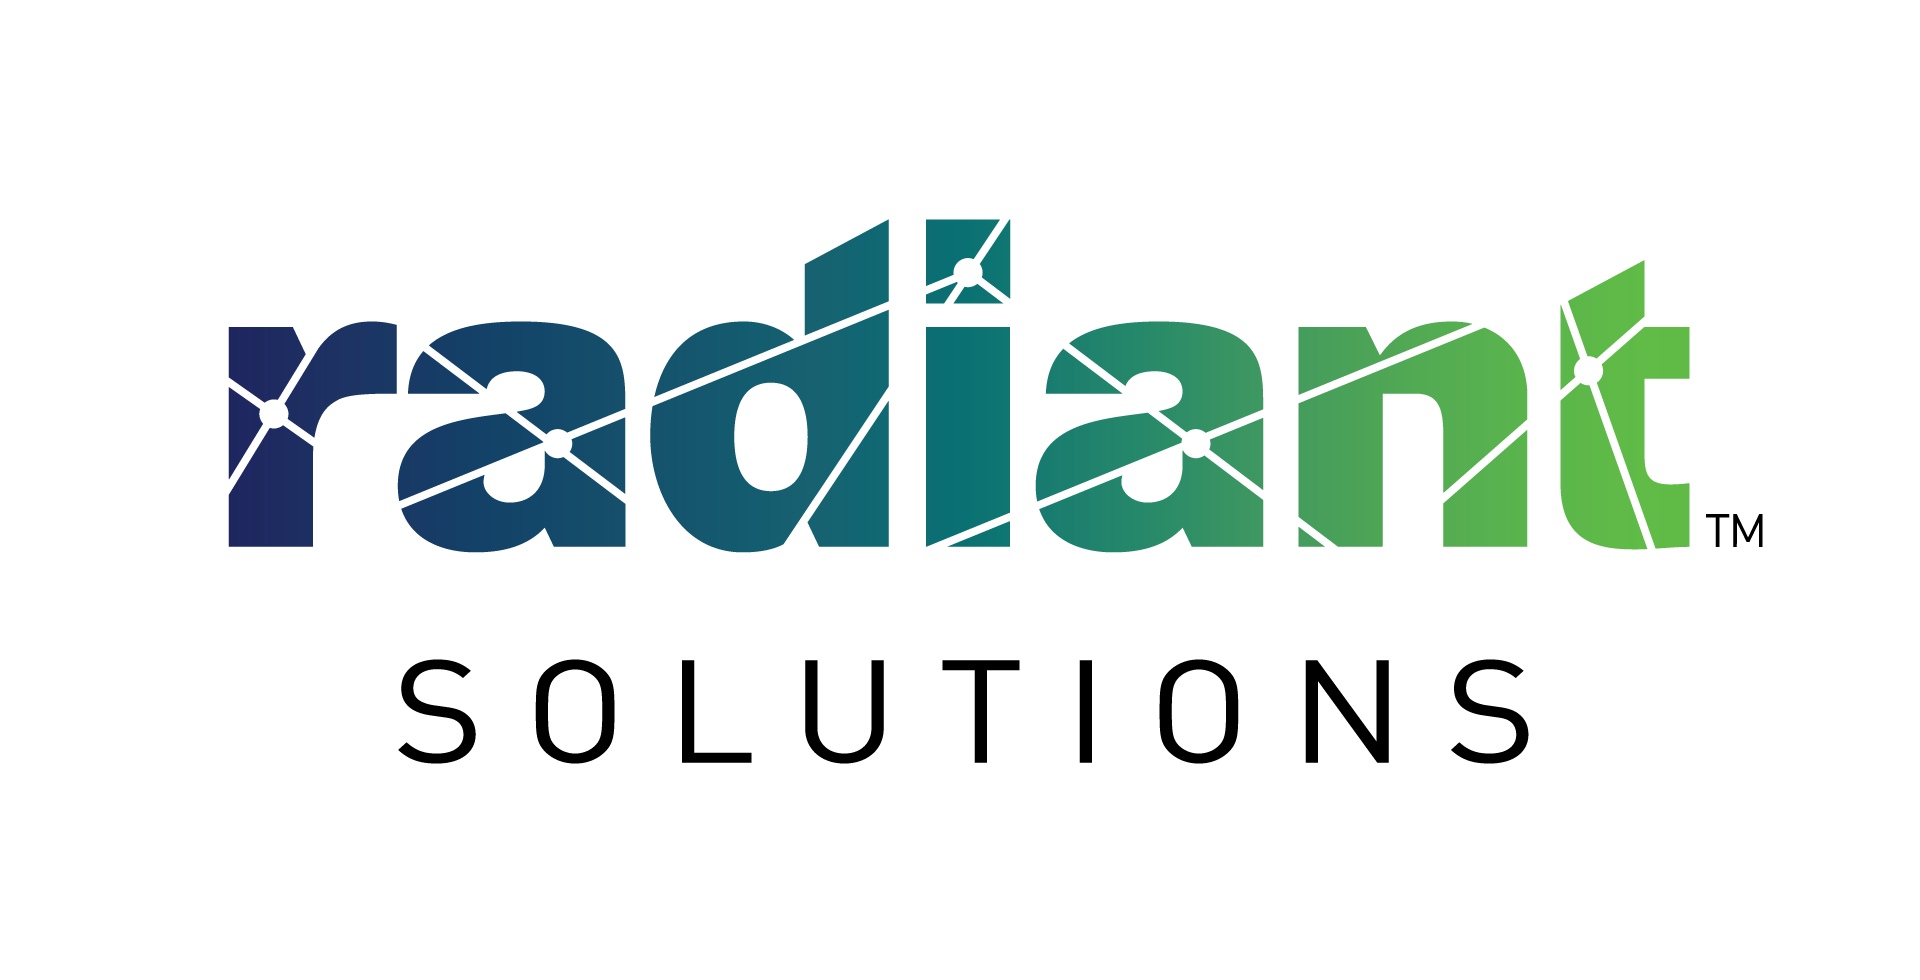 ../_images/Radiant-Solutions-Logo-Color-1920.png